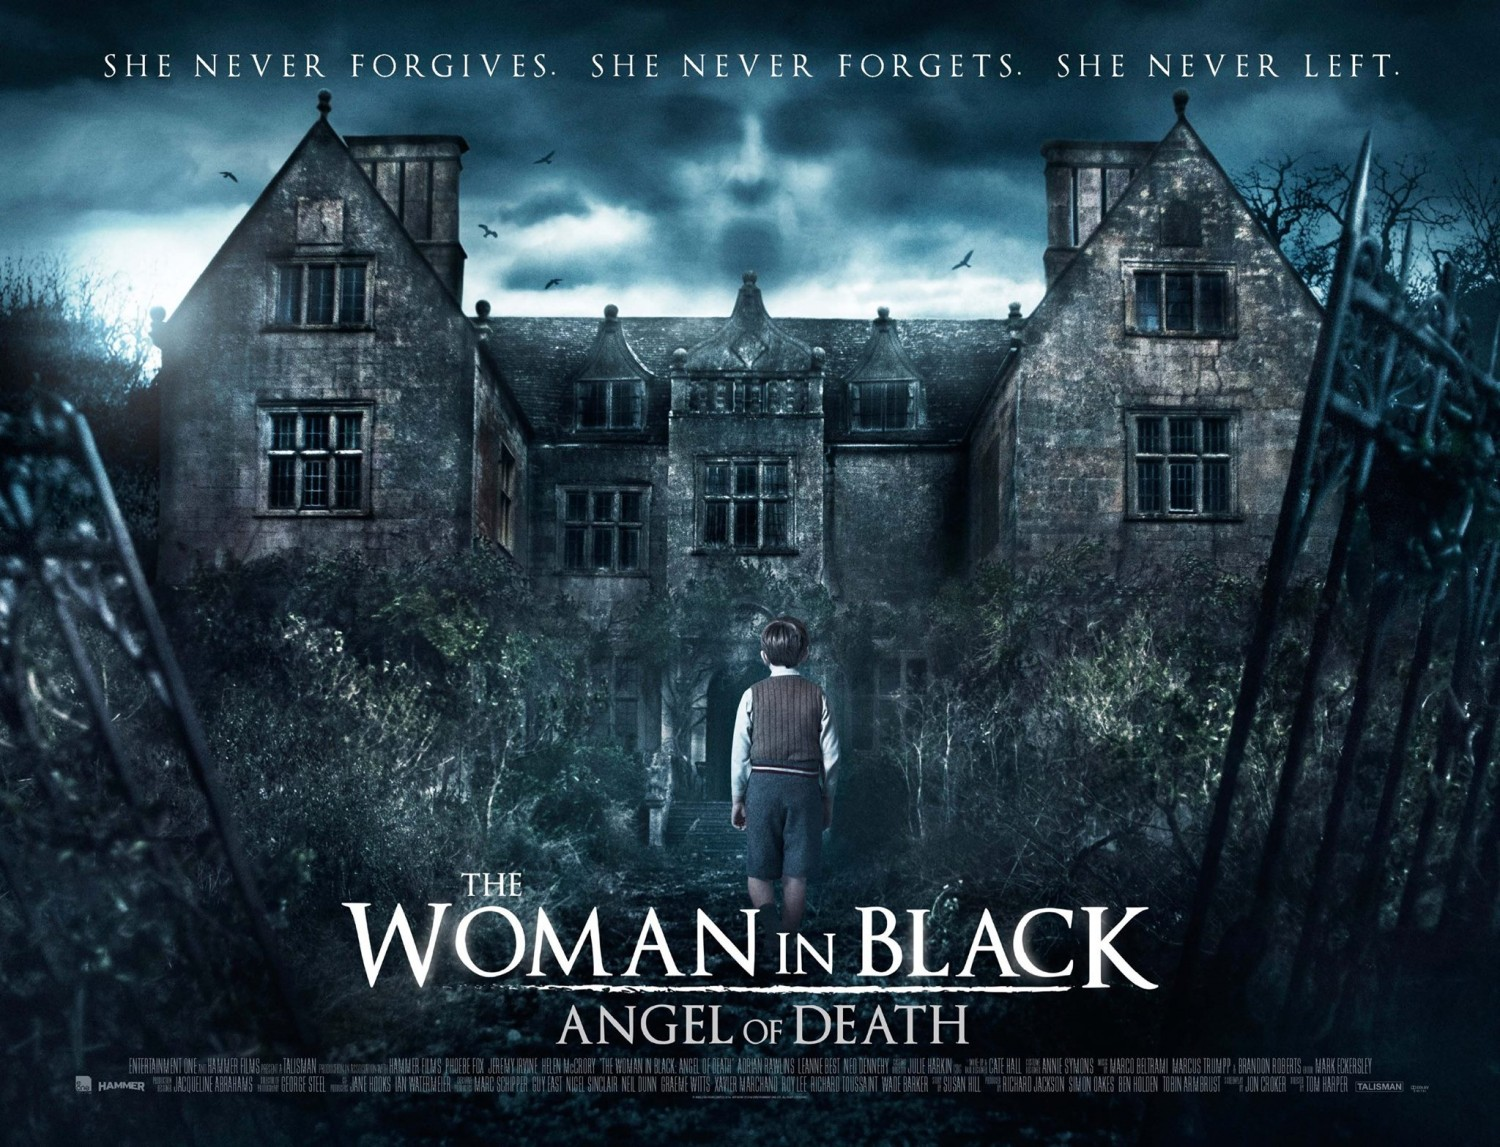 woman in black 2 angel of death, the (2015) - dread central